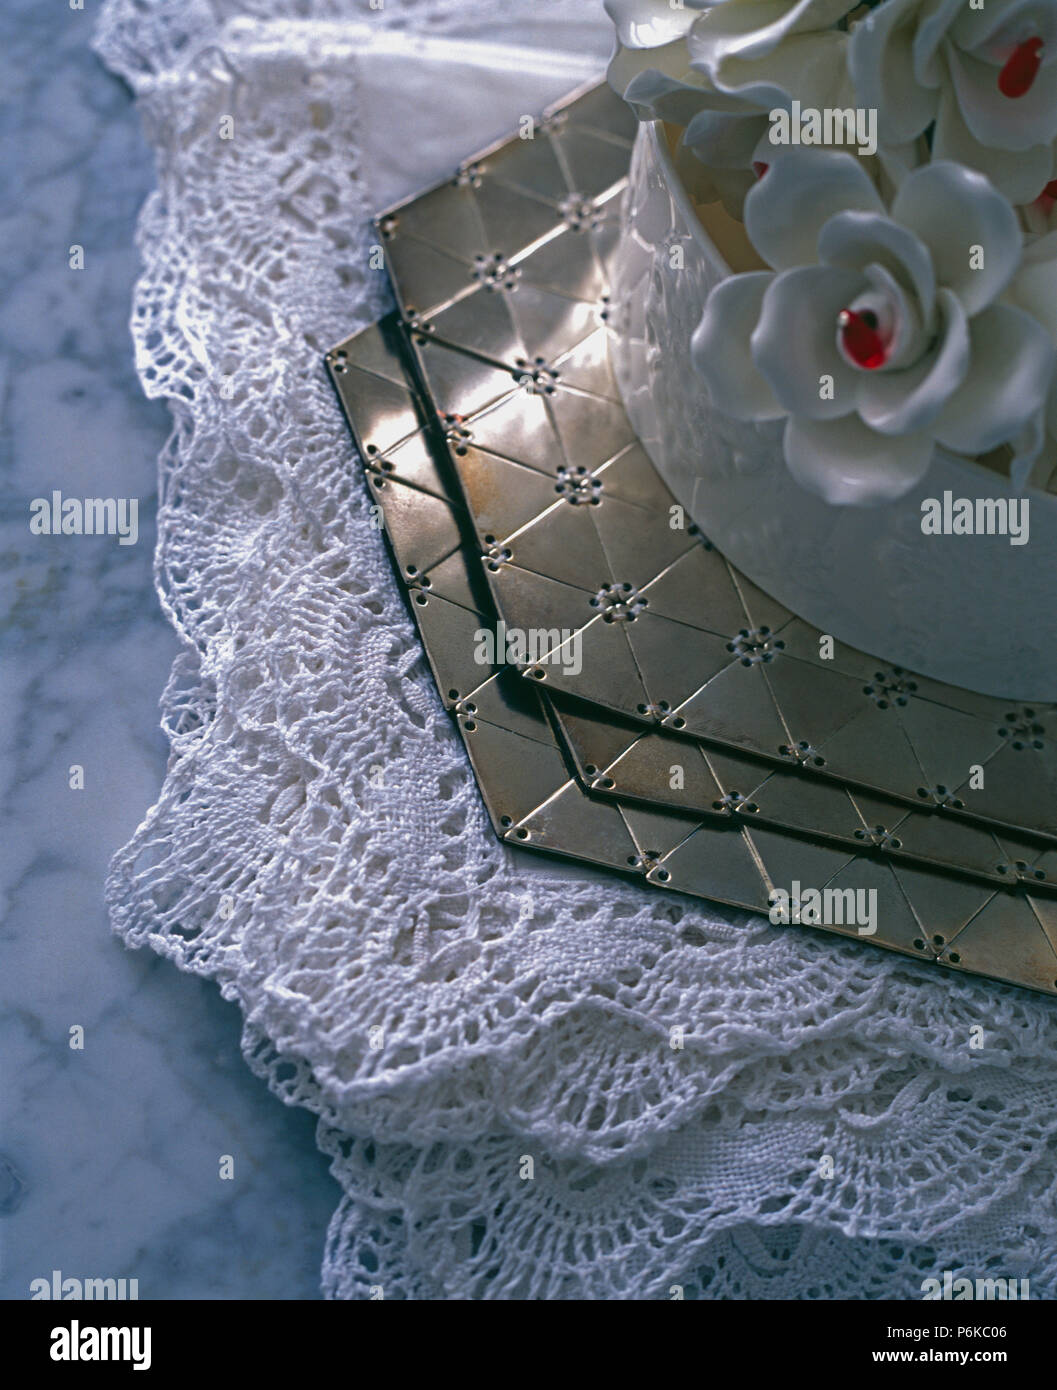 Close-up of hexagonal metal placemats on folded lace tablecloths Stock Photo